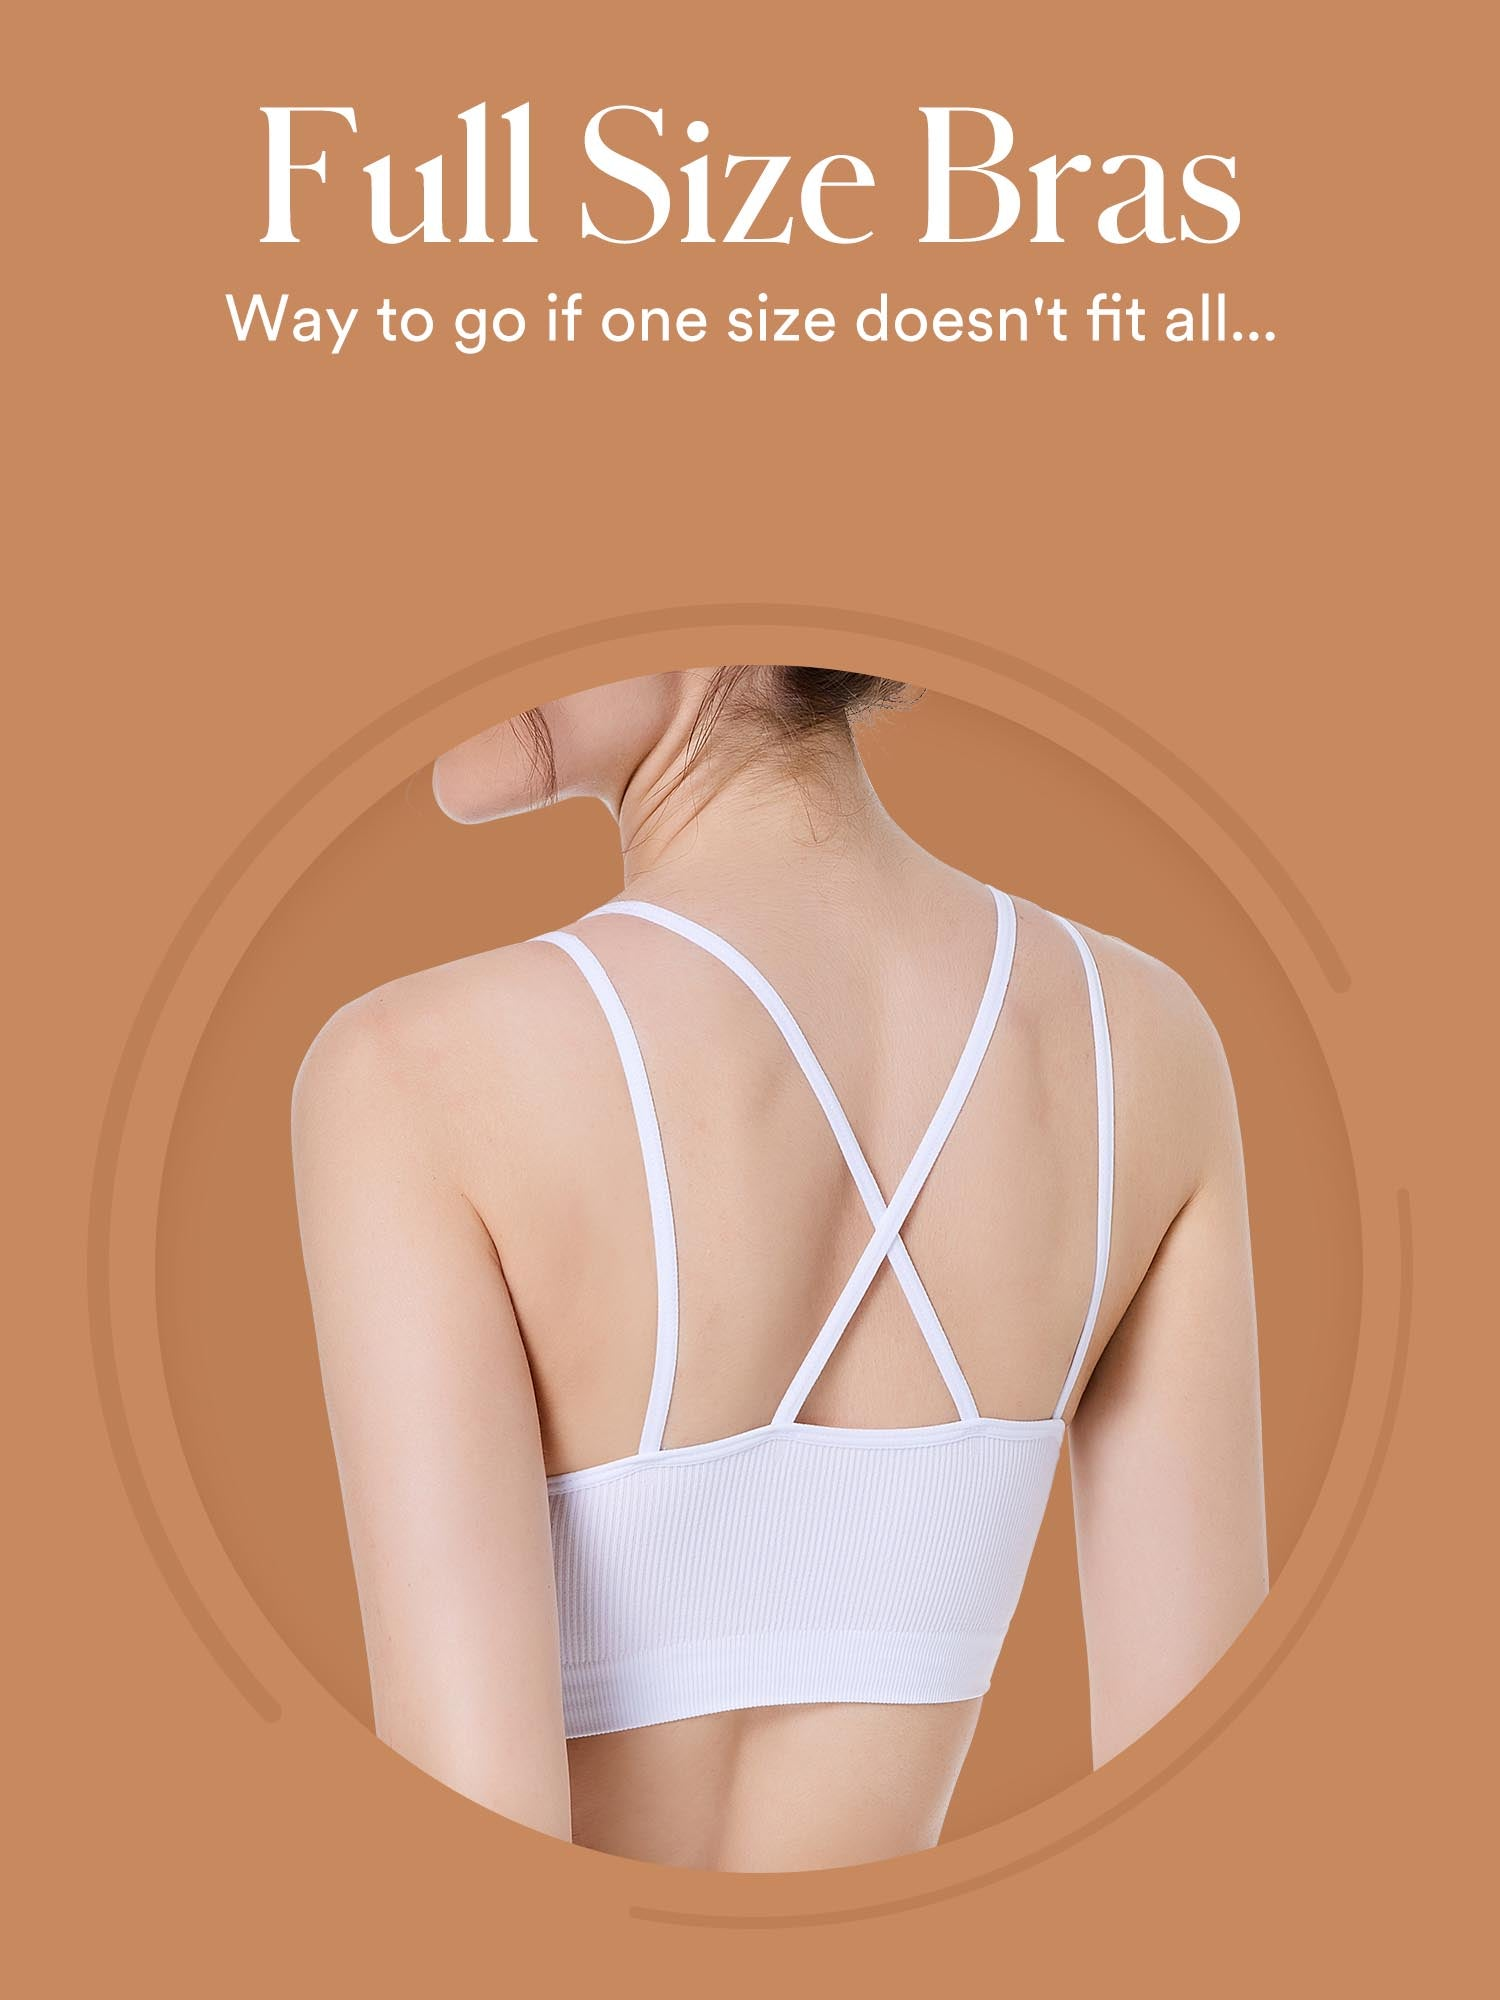 Coobie® Award-Winning Signature Seamless Bras in Full Size. This is the alternative for  one size bras, designed for larger size women. With the Ultra-Soft Fabric, Wire-Free Design and Cutting-Edge Knitting Technologies, our bras are Ultra Stretchy, Comfort & Fit. Perfect for All-Day activities.